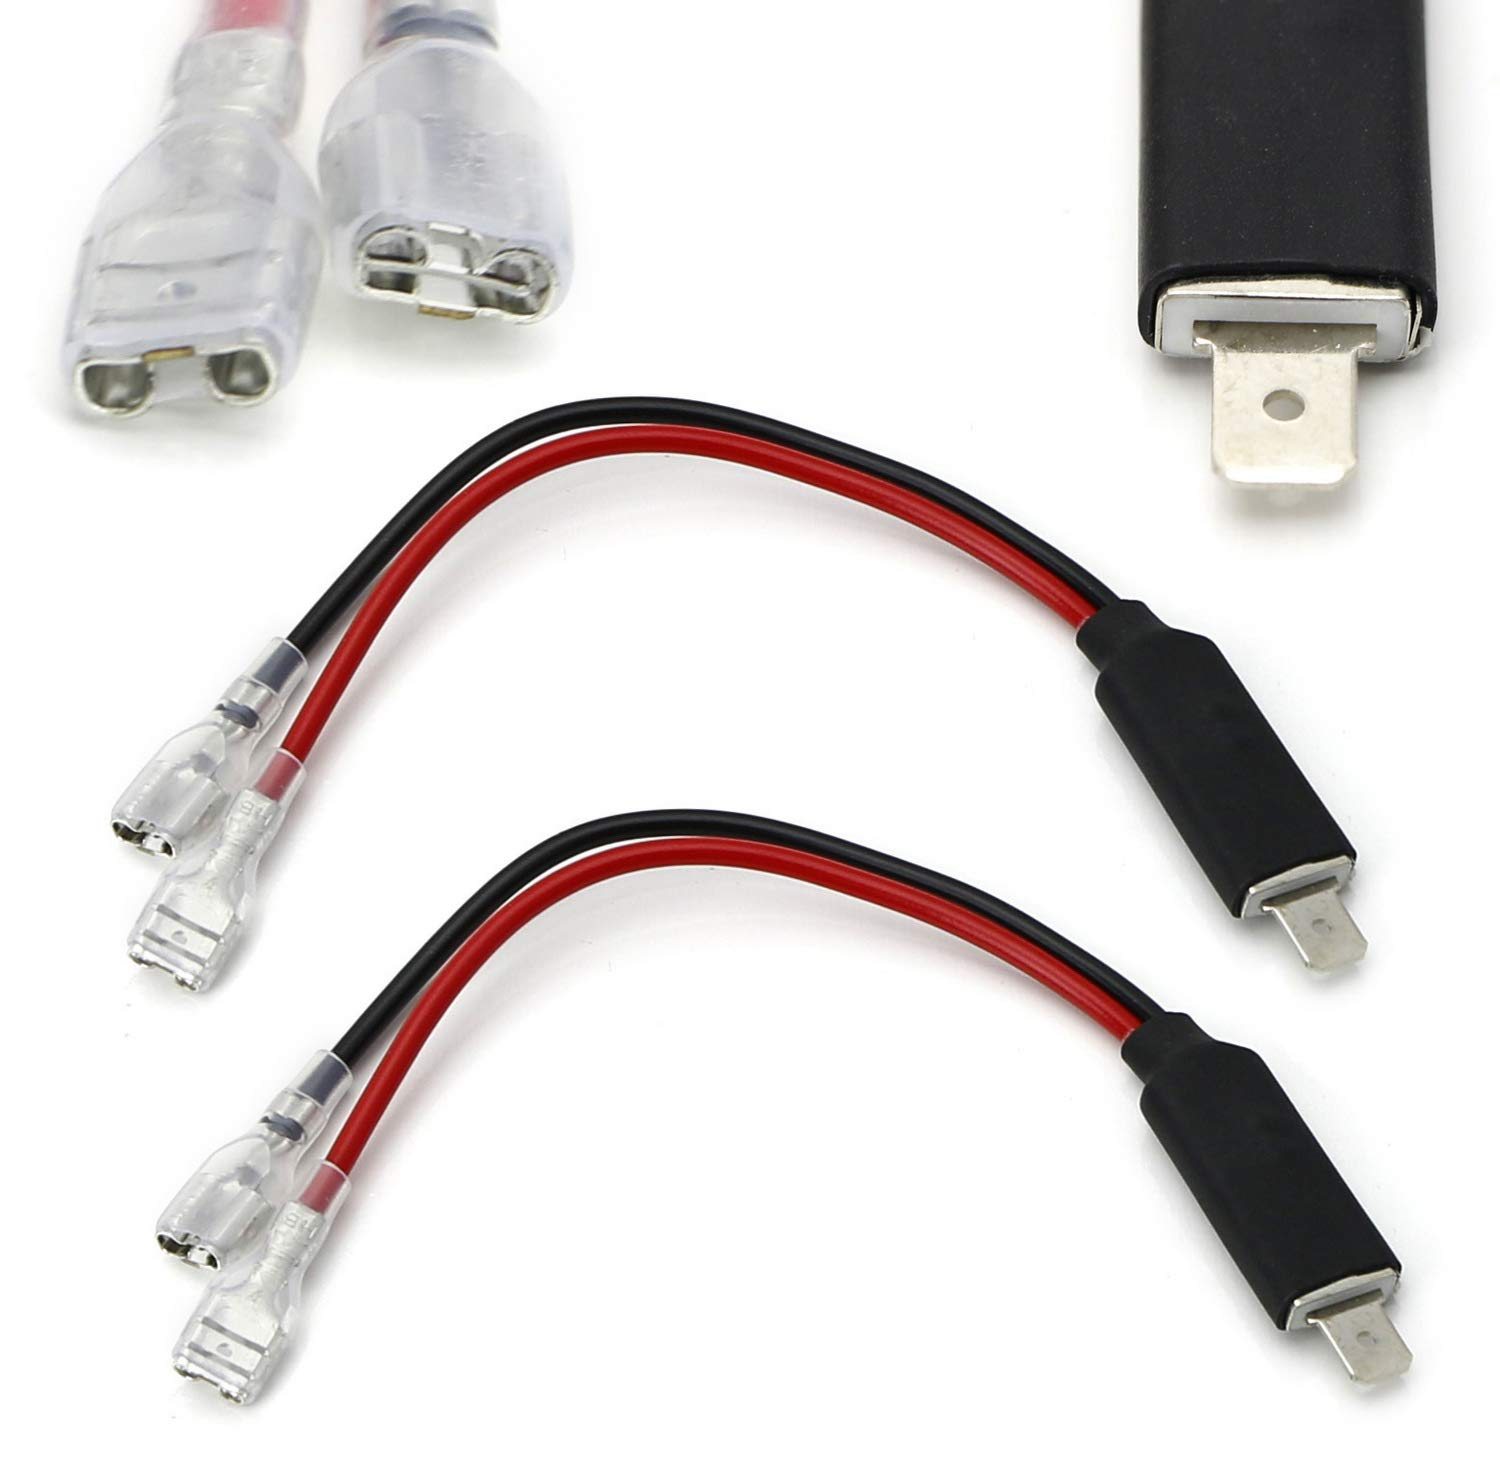 amazon com ijdmtoy (2) oem h1 socket adapter wires for hid H1 Bulb Wiring cql hid bulb h1 harness wires,hid relay